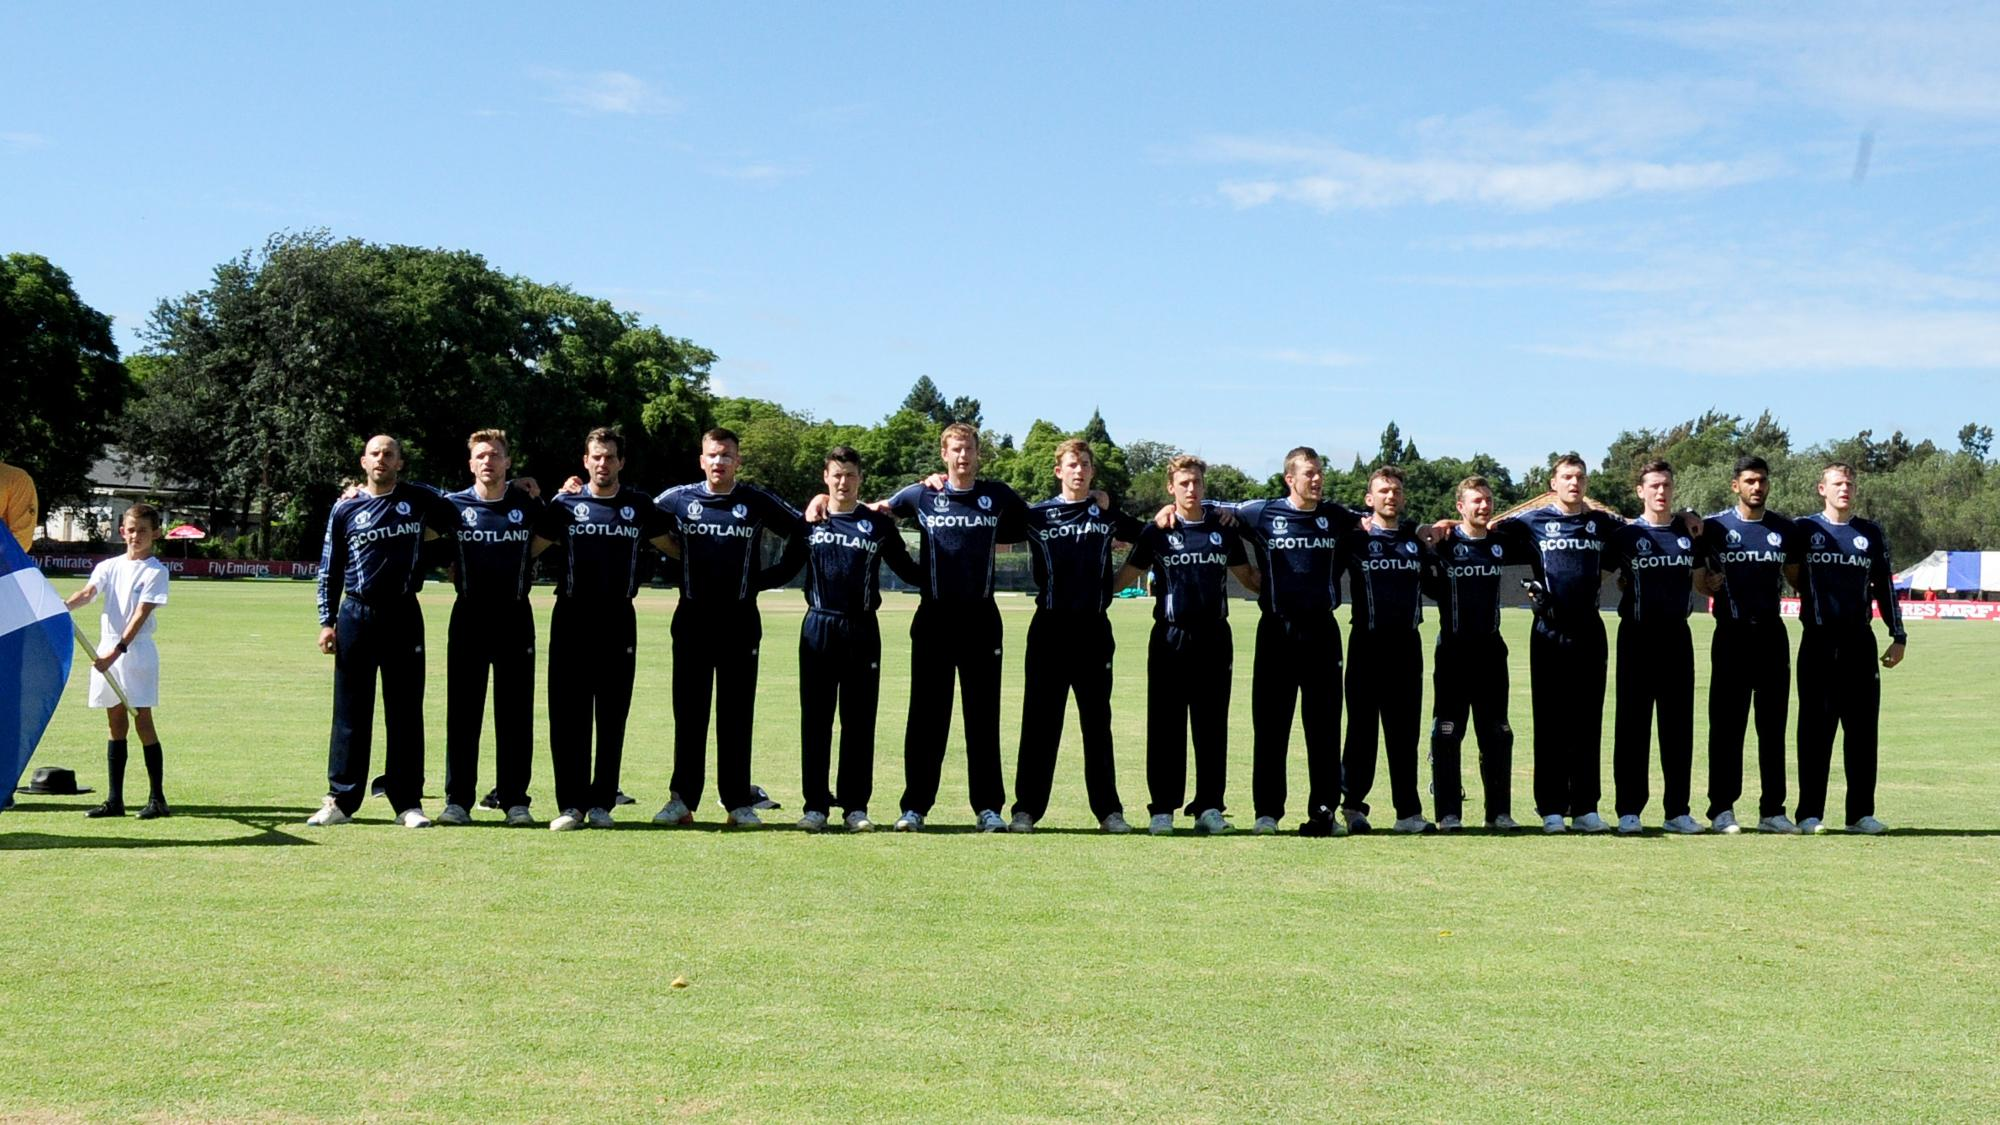 Hong Kong v Scotland, Group B, ICC World Cup Qualifiers